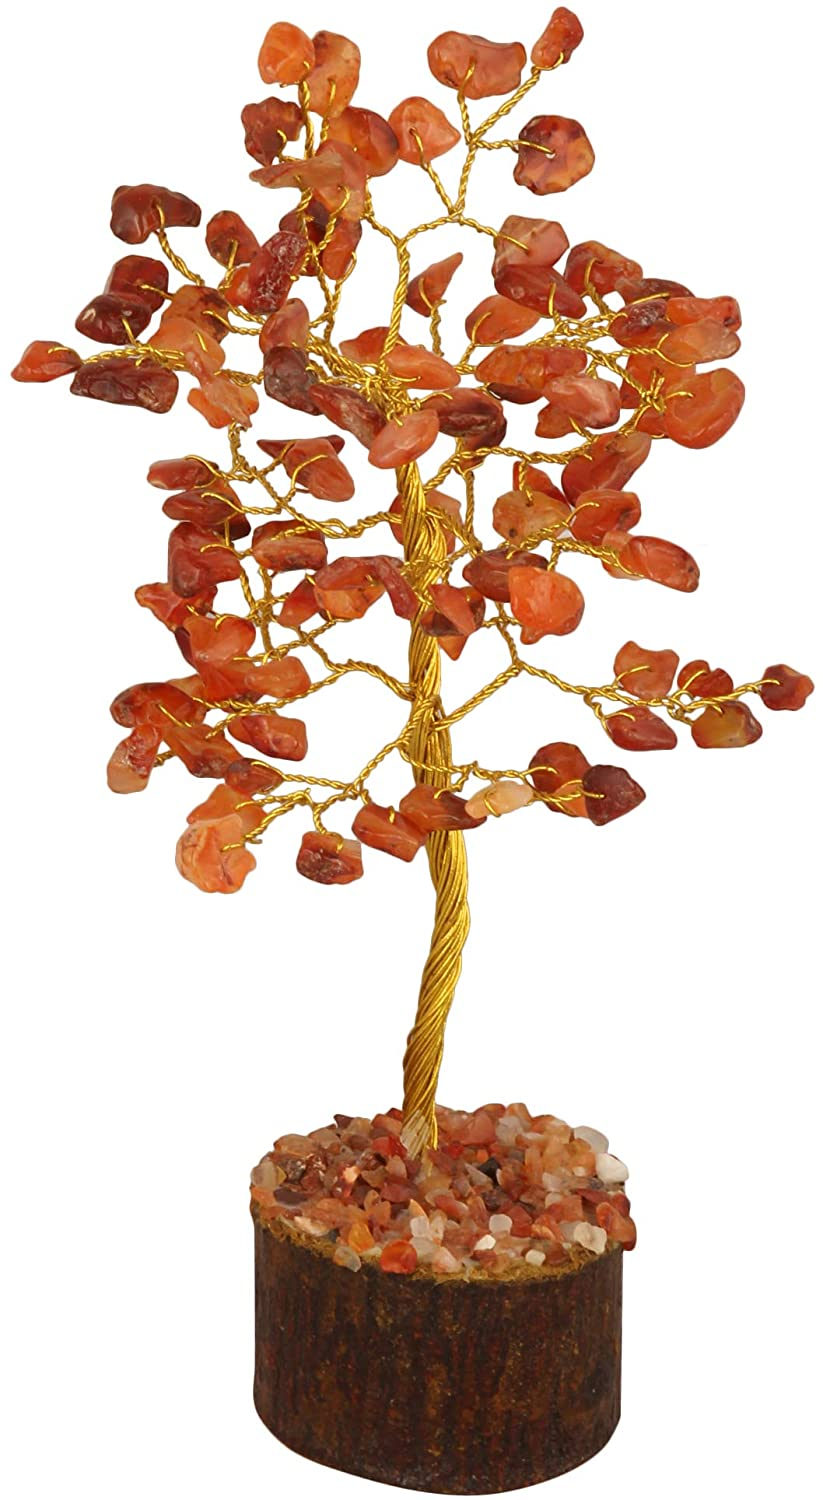 FASHIONZAADI Carnelian Feng Shui Bonsai Gemstone Tree Natural Stone Trees for Chakra Healing Crystal Good Luck Home Decoration House Spiritual Gift Décor Health Wealth Size 7-8 inch (Golden Wire)